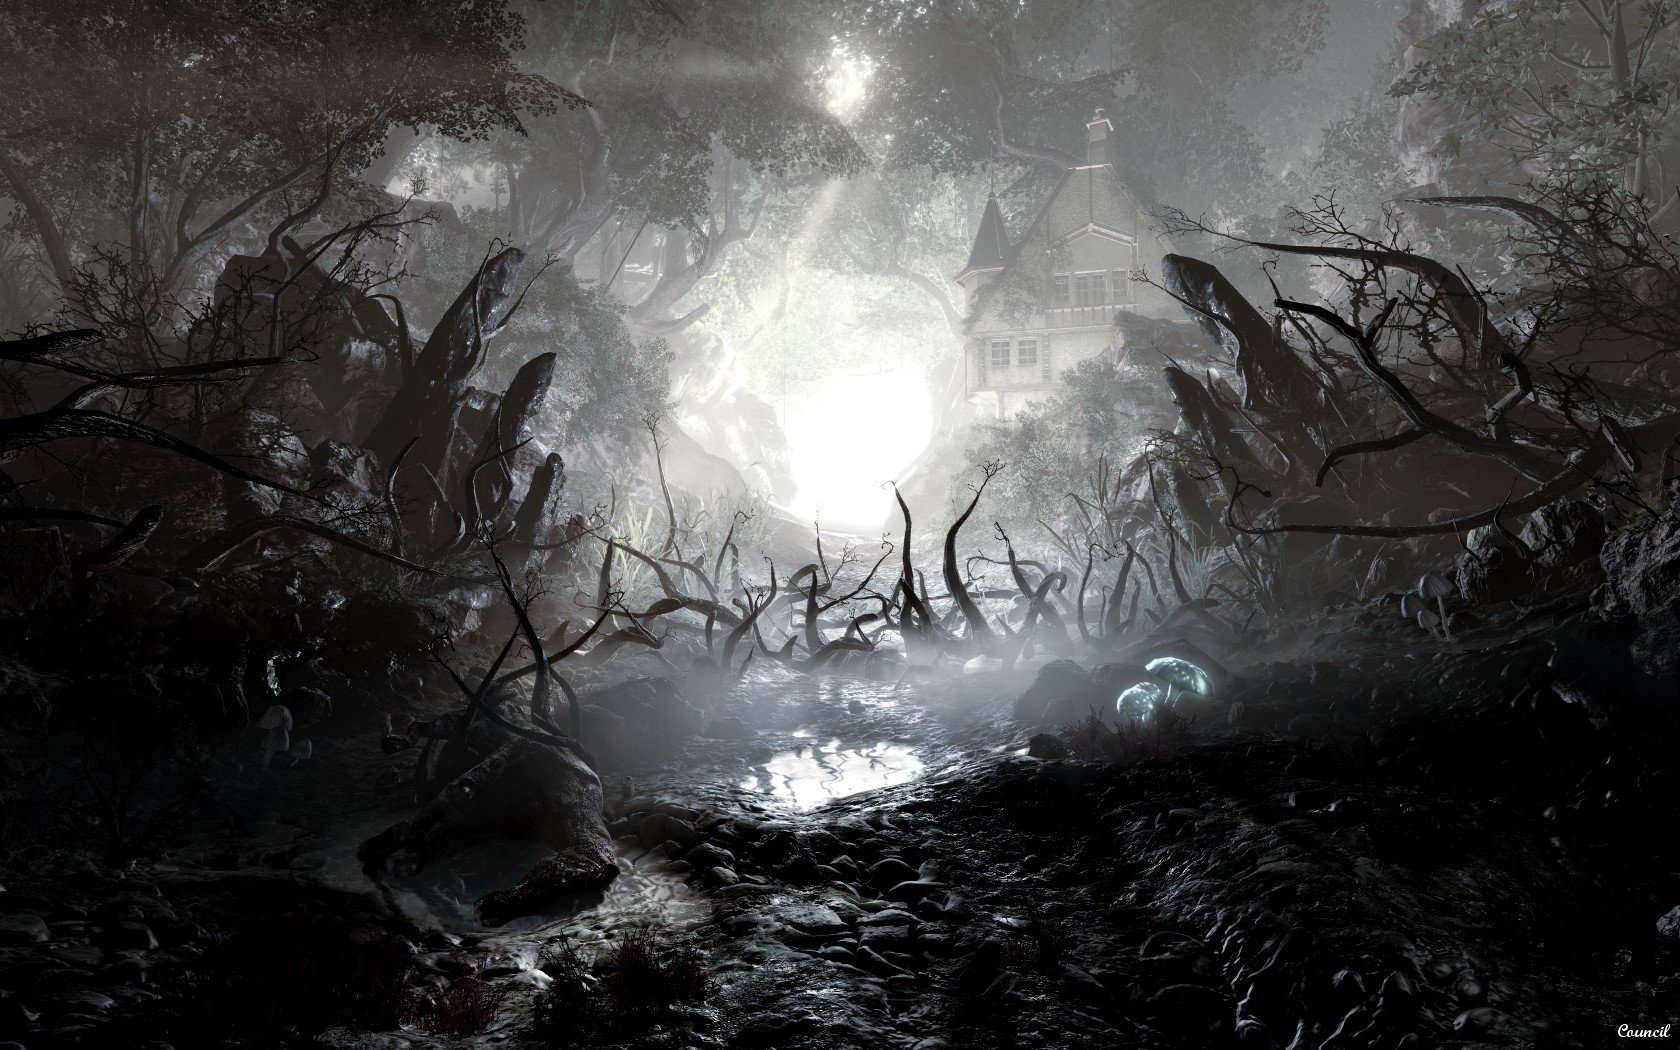 CryEngine Community Art submitted by Council